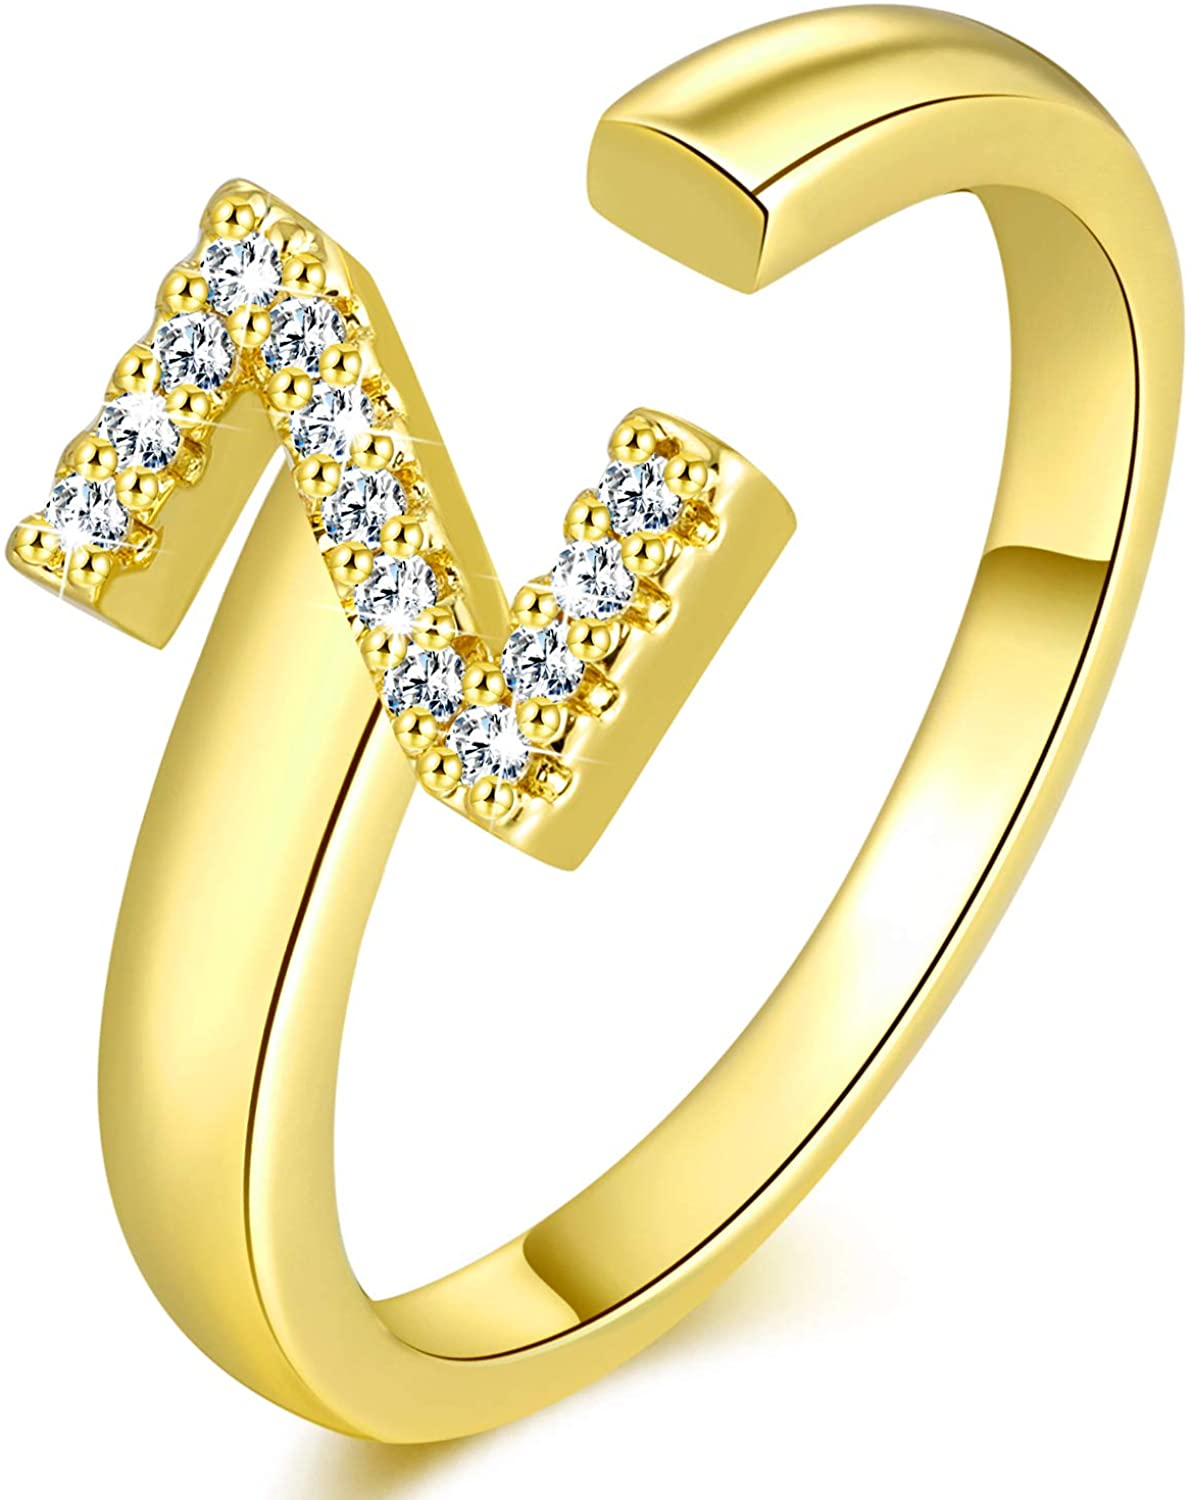 YELUN 18K Gold Initial Letter Ring Adjustable Crystal Inlaid Free Size Stackable Alphabet Letter Knuckle Rings Bridesmaid Gift A to Z